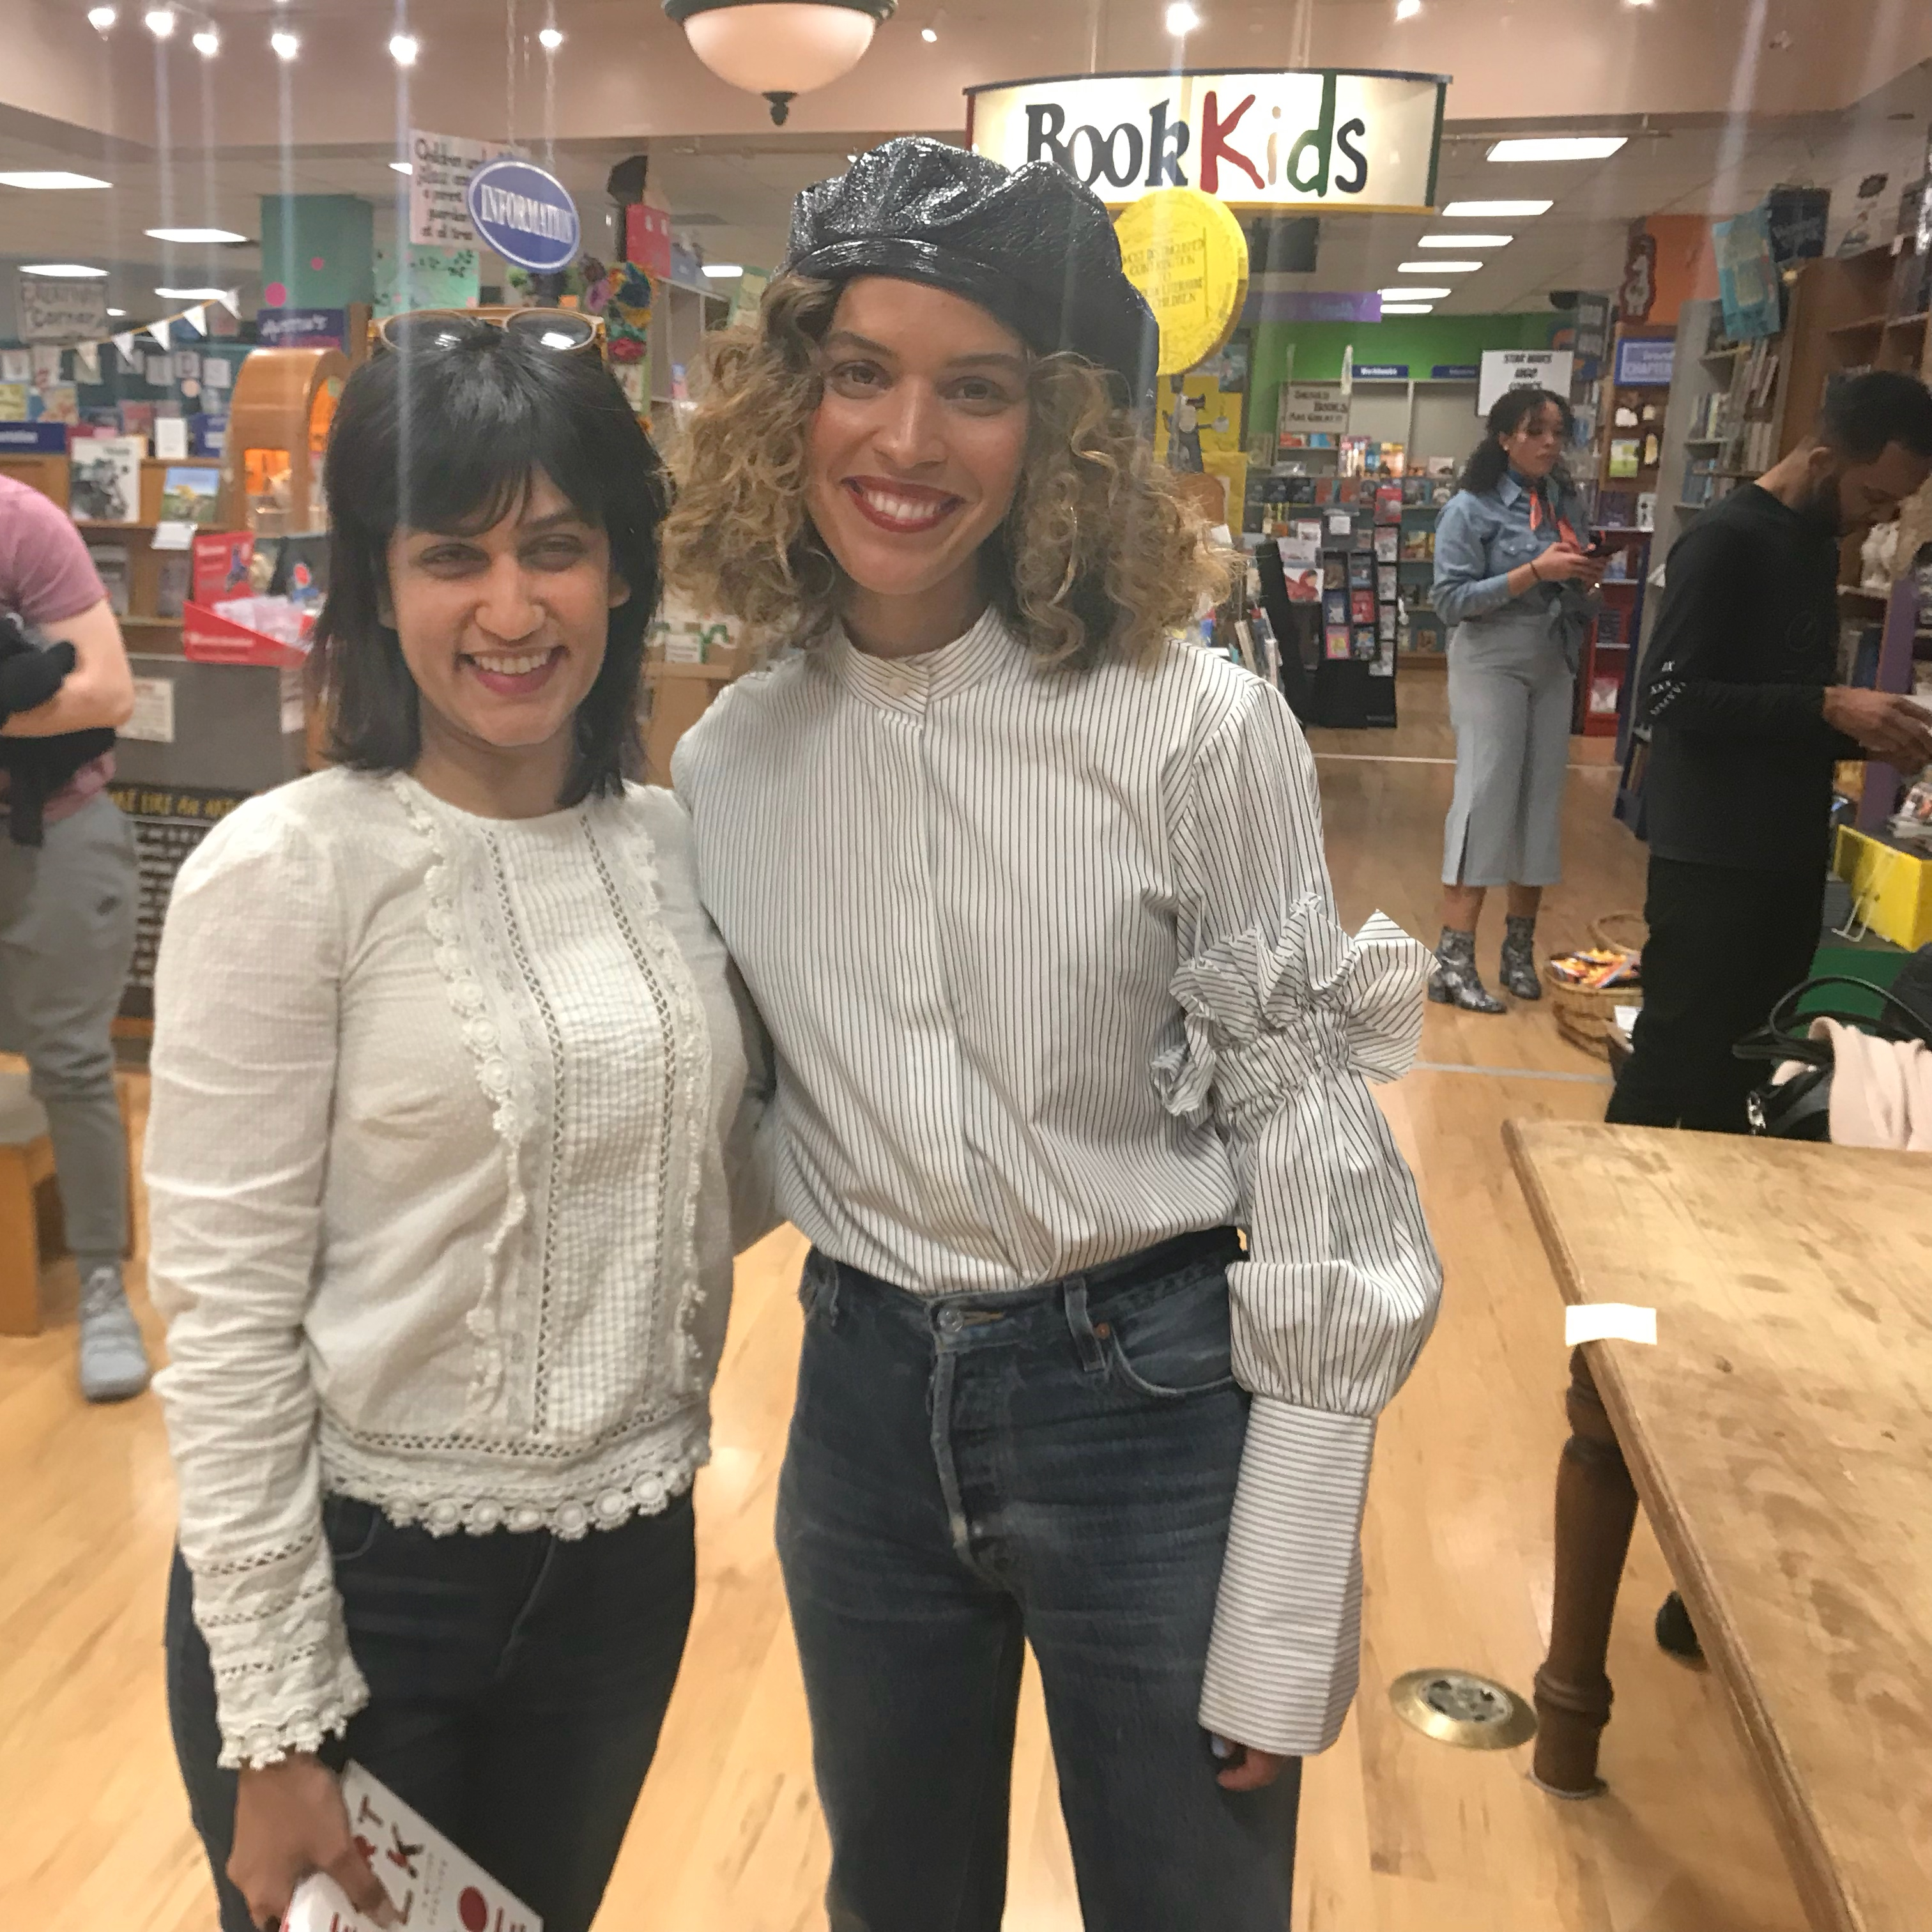 Cleo Wade and I at the book signing